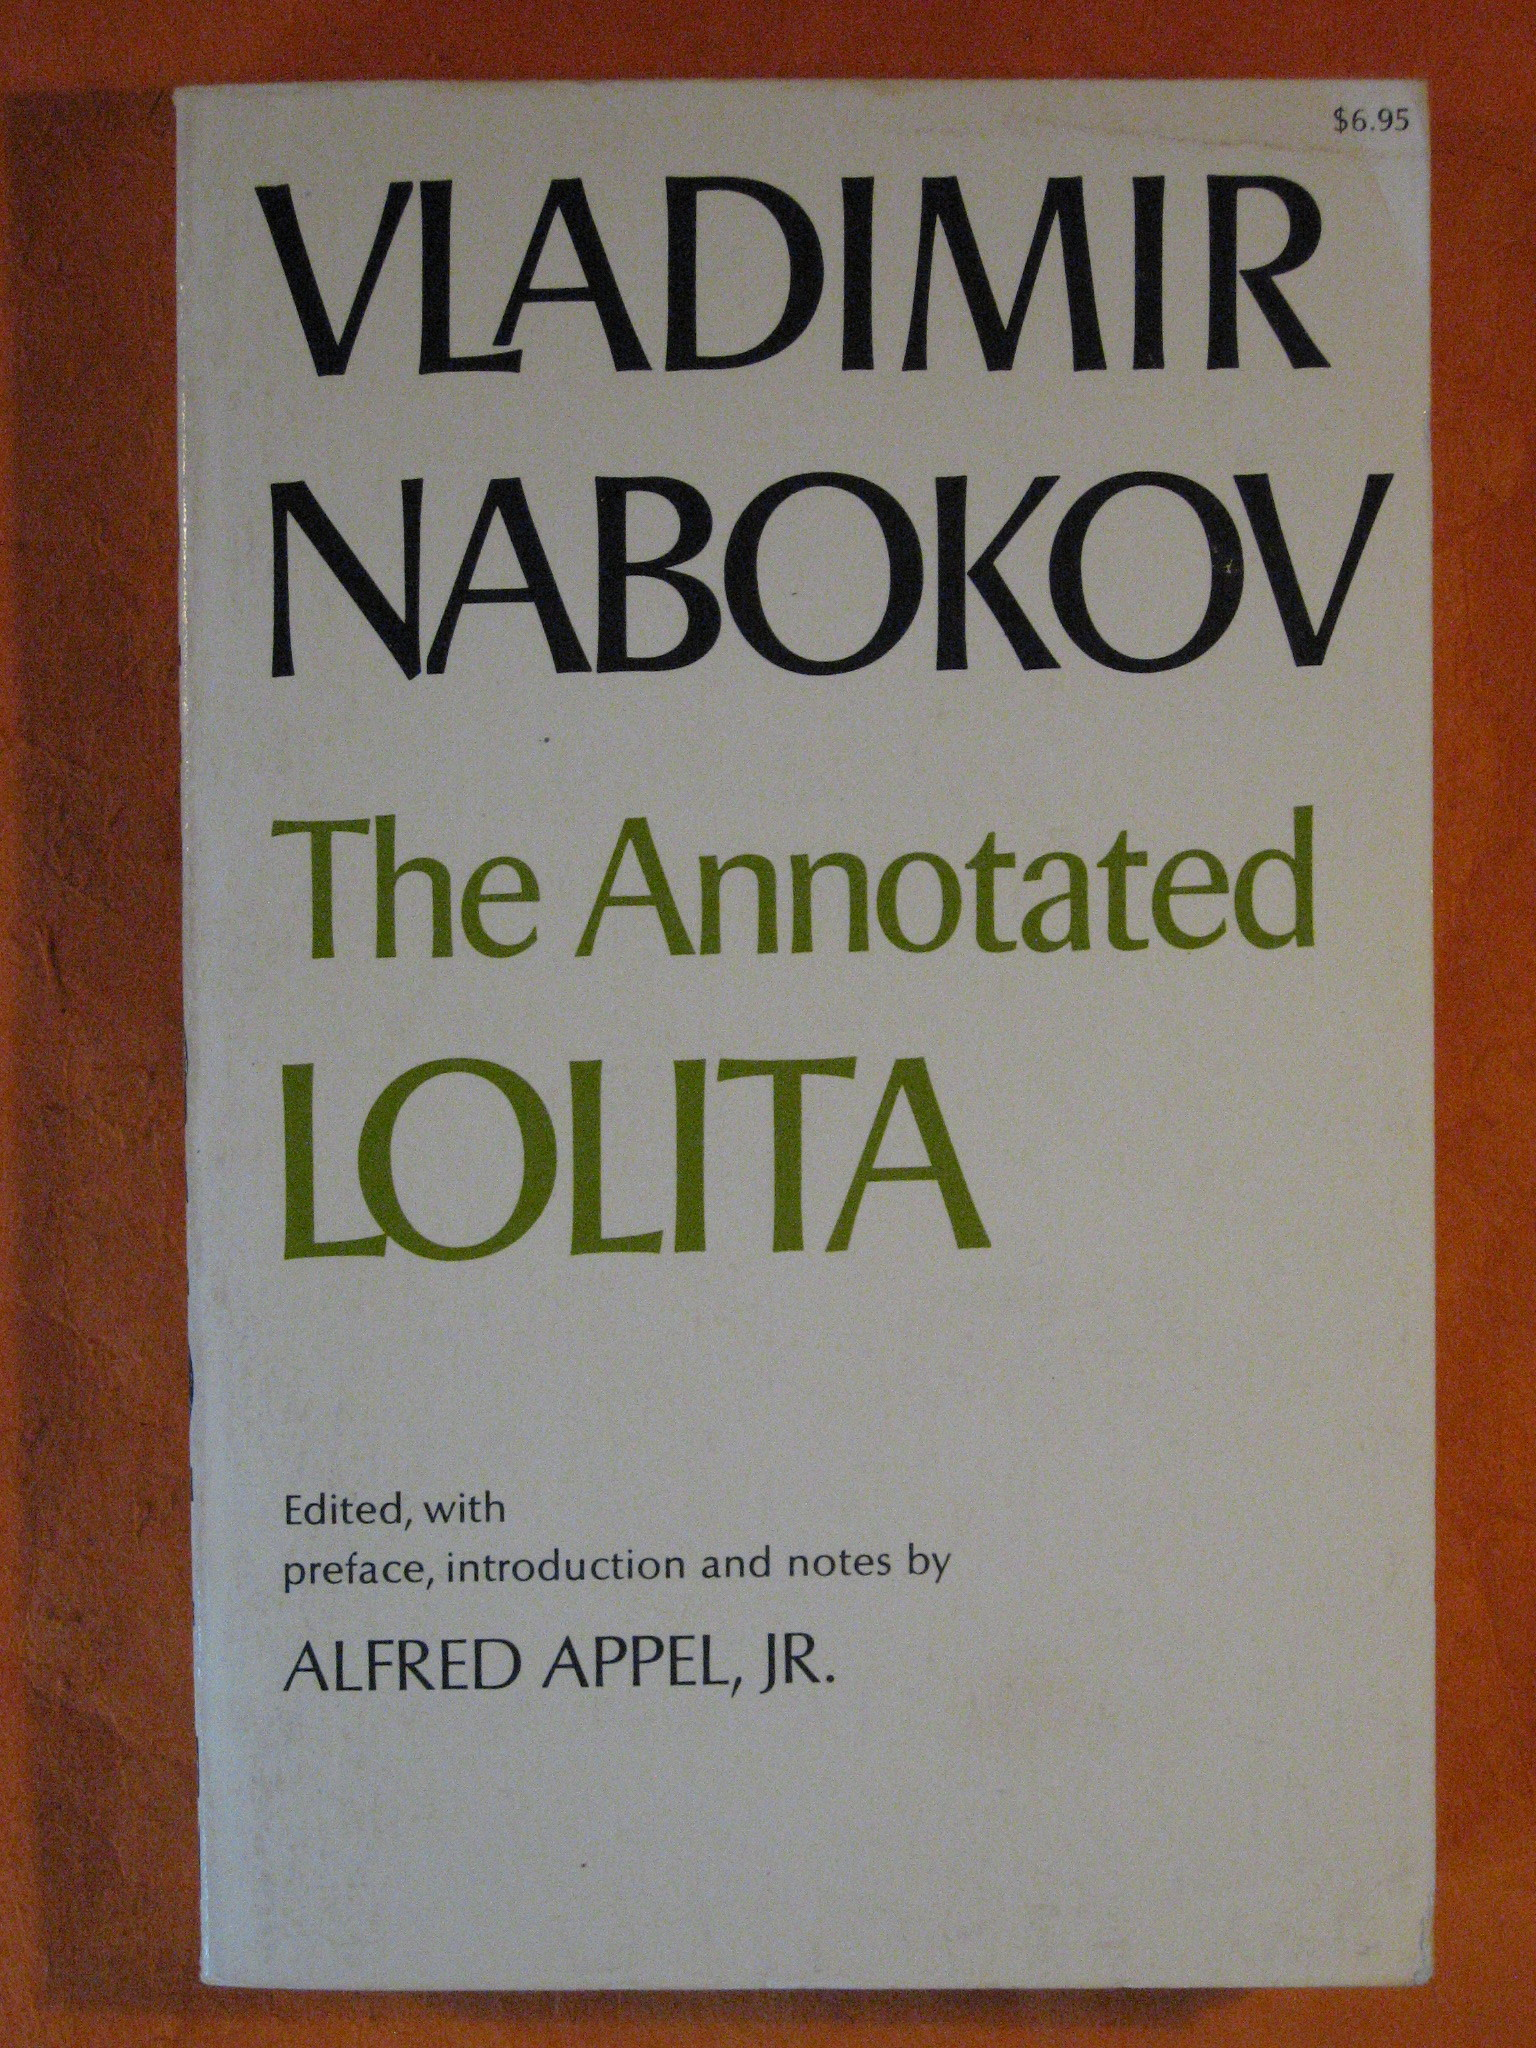 The Annotated Lolita, Nabokov, Vladimir; Alfred Appel, Jr. (editor)